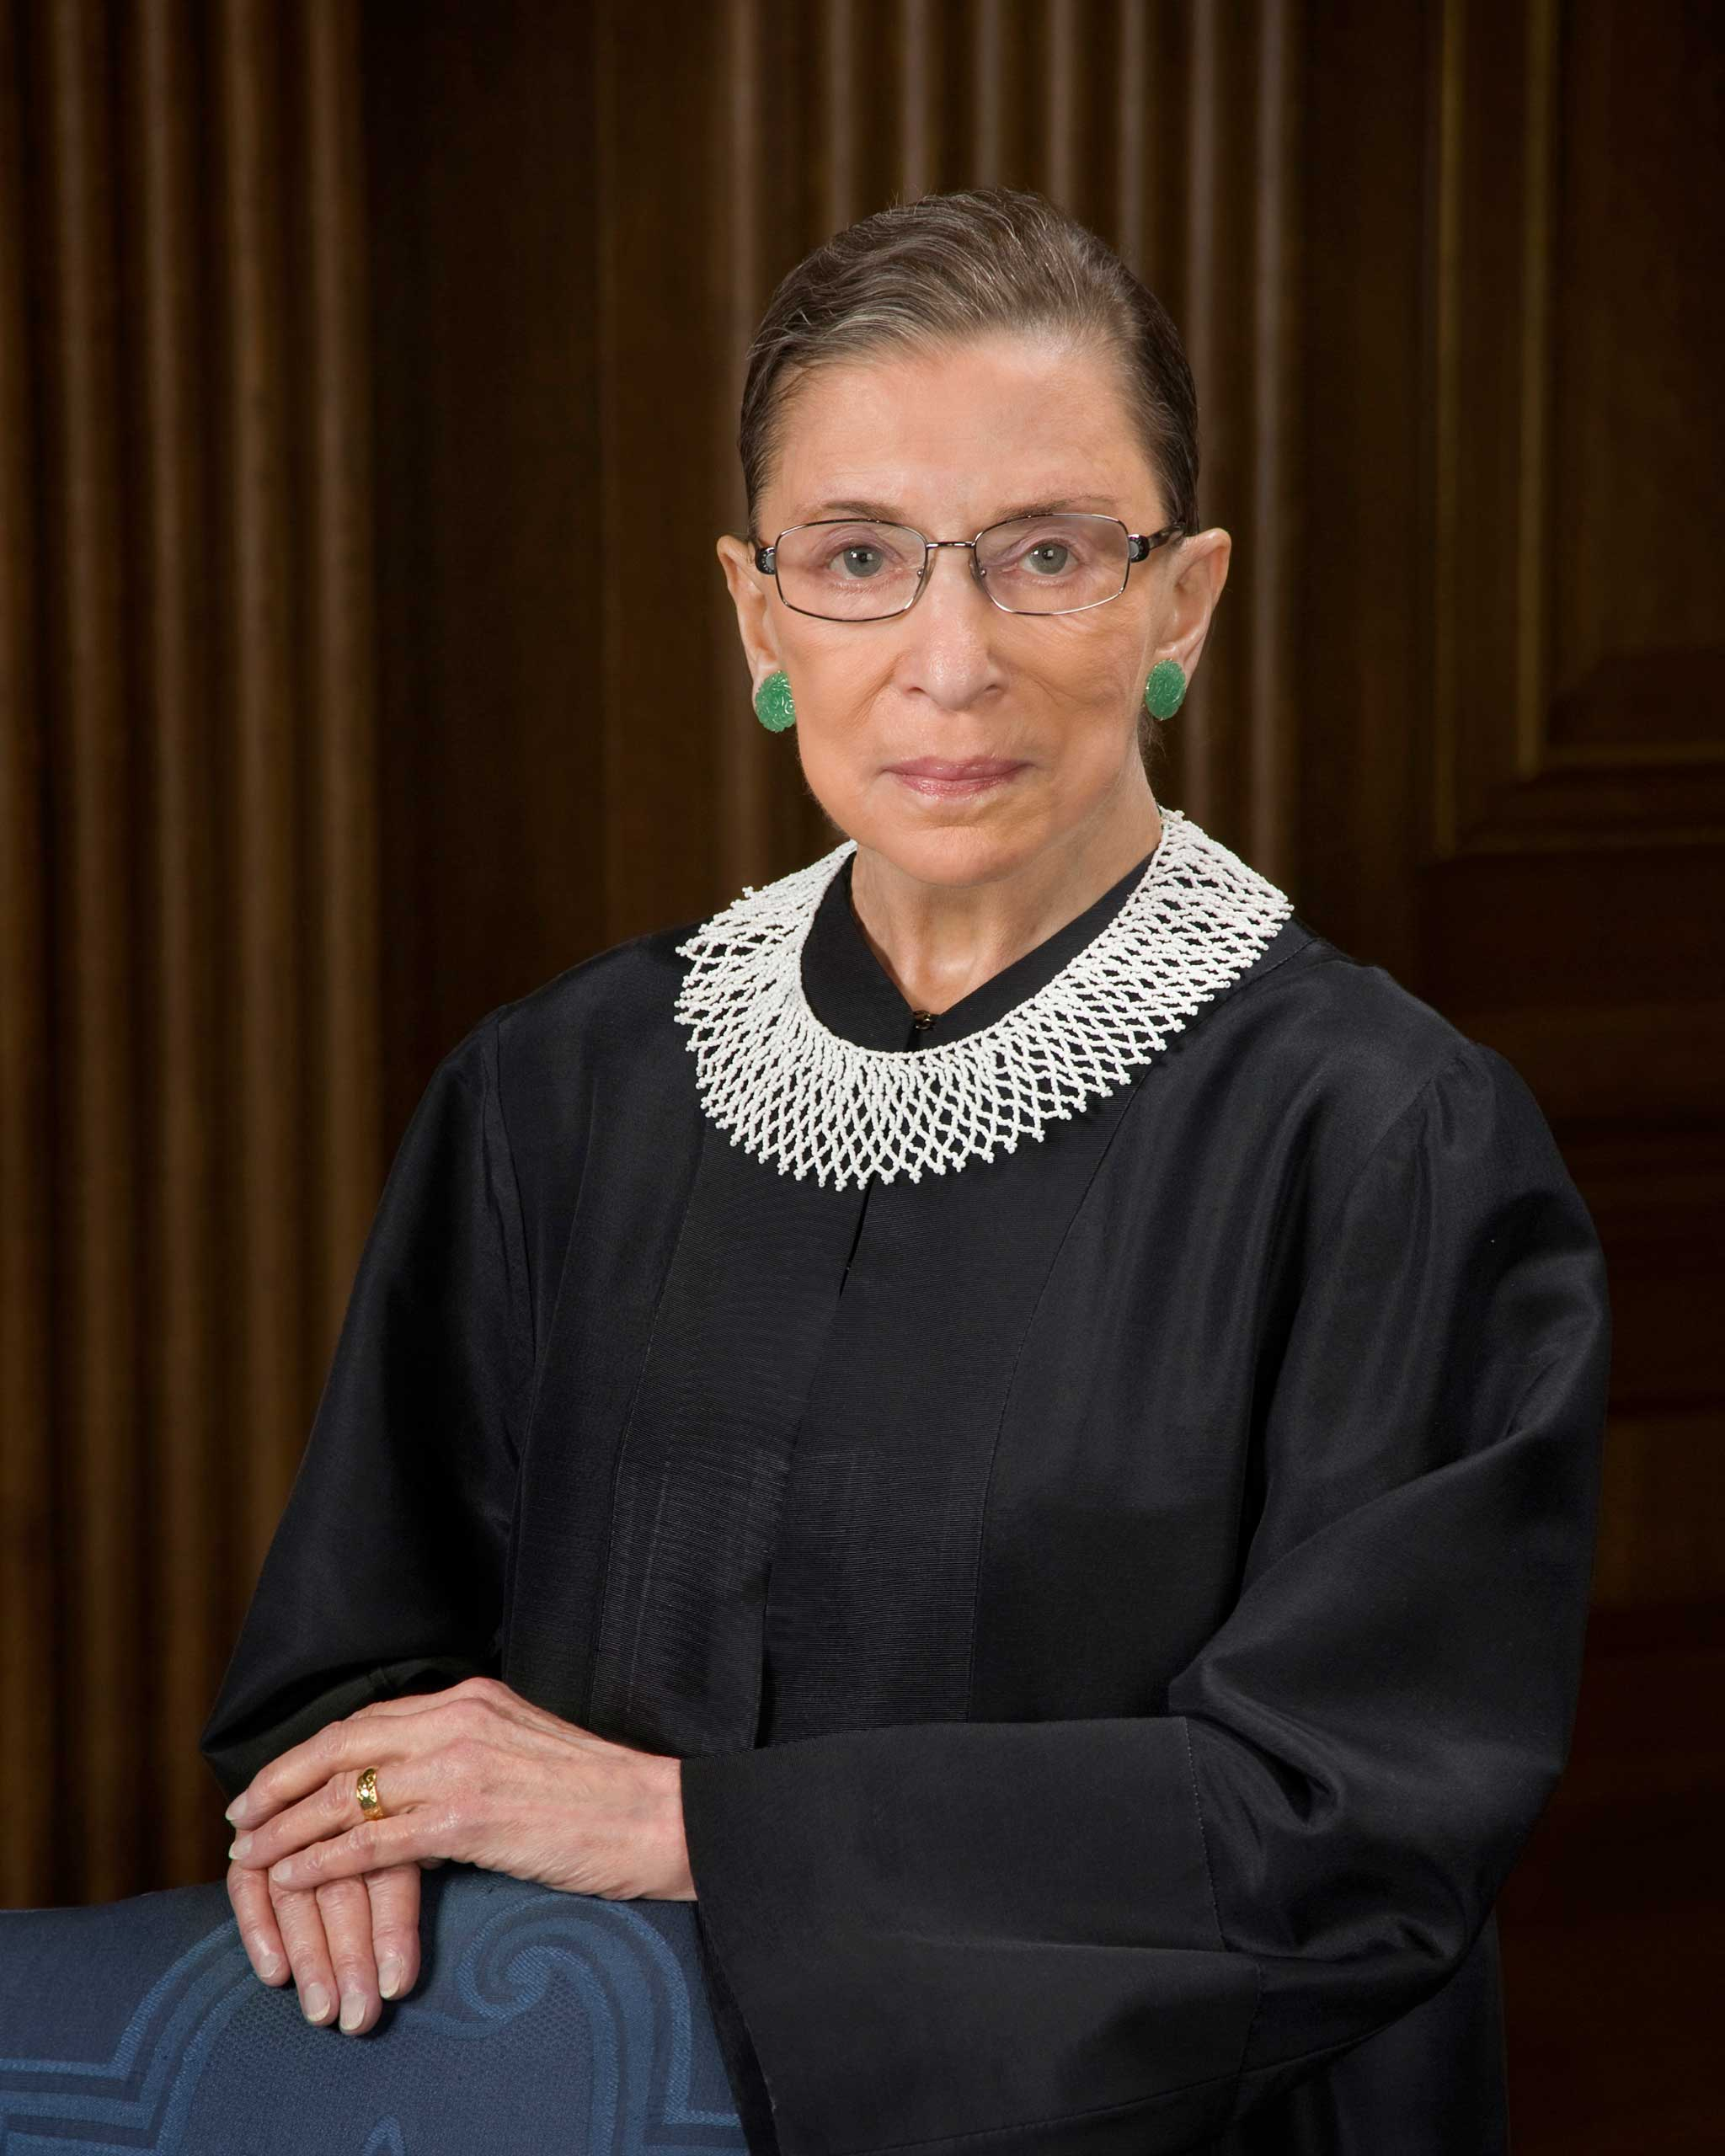 Official portrait of Justice Ruth Bader Ginsburg